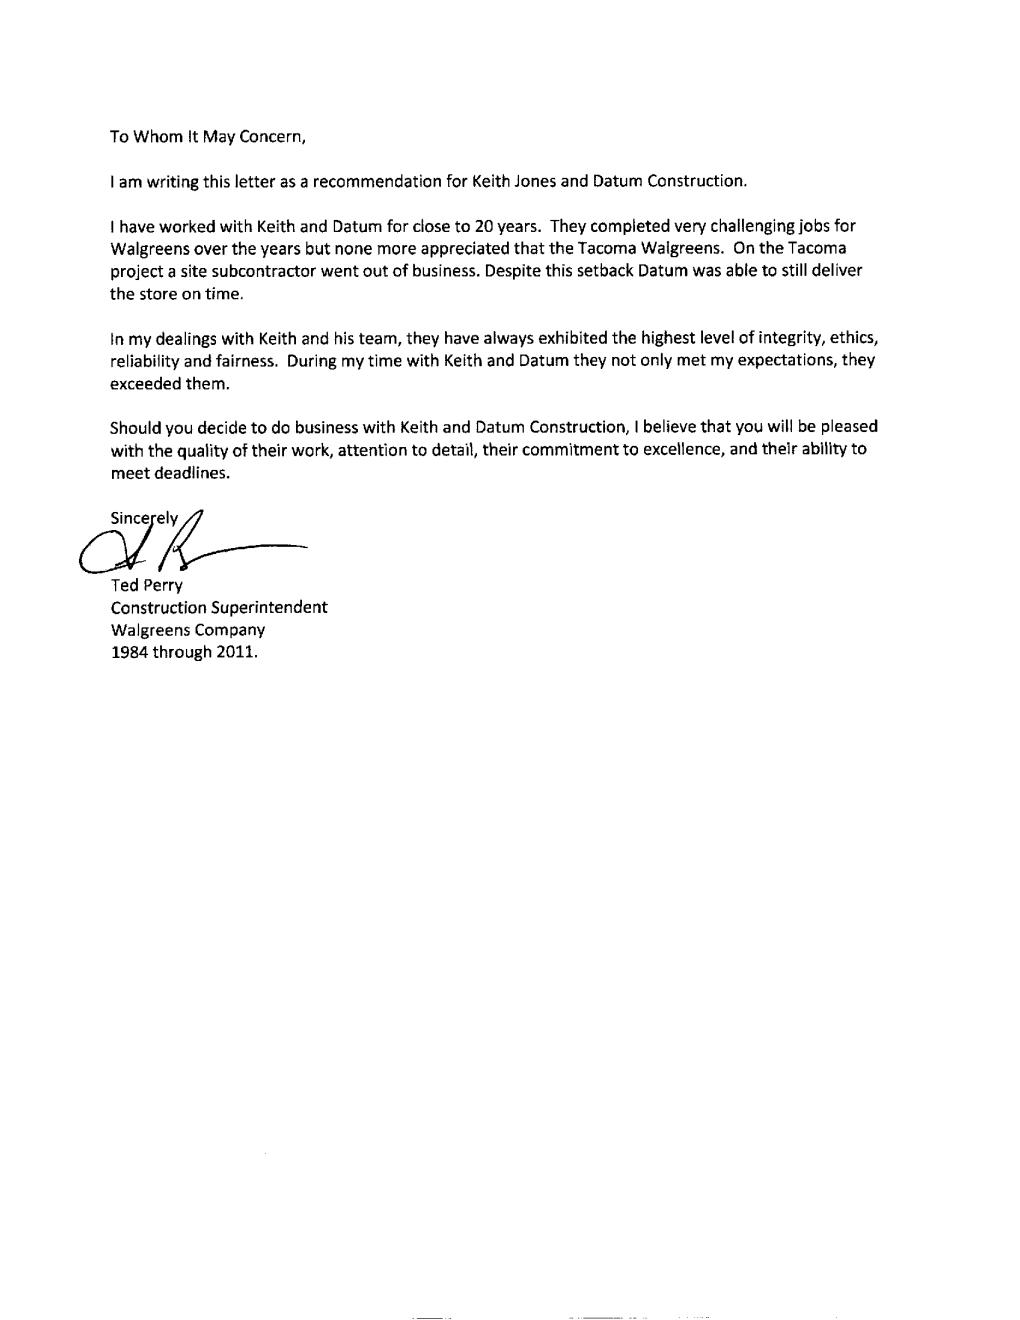 Letter Of Recommendation From Walgreens Datum